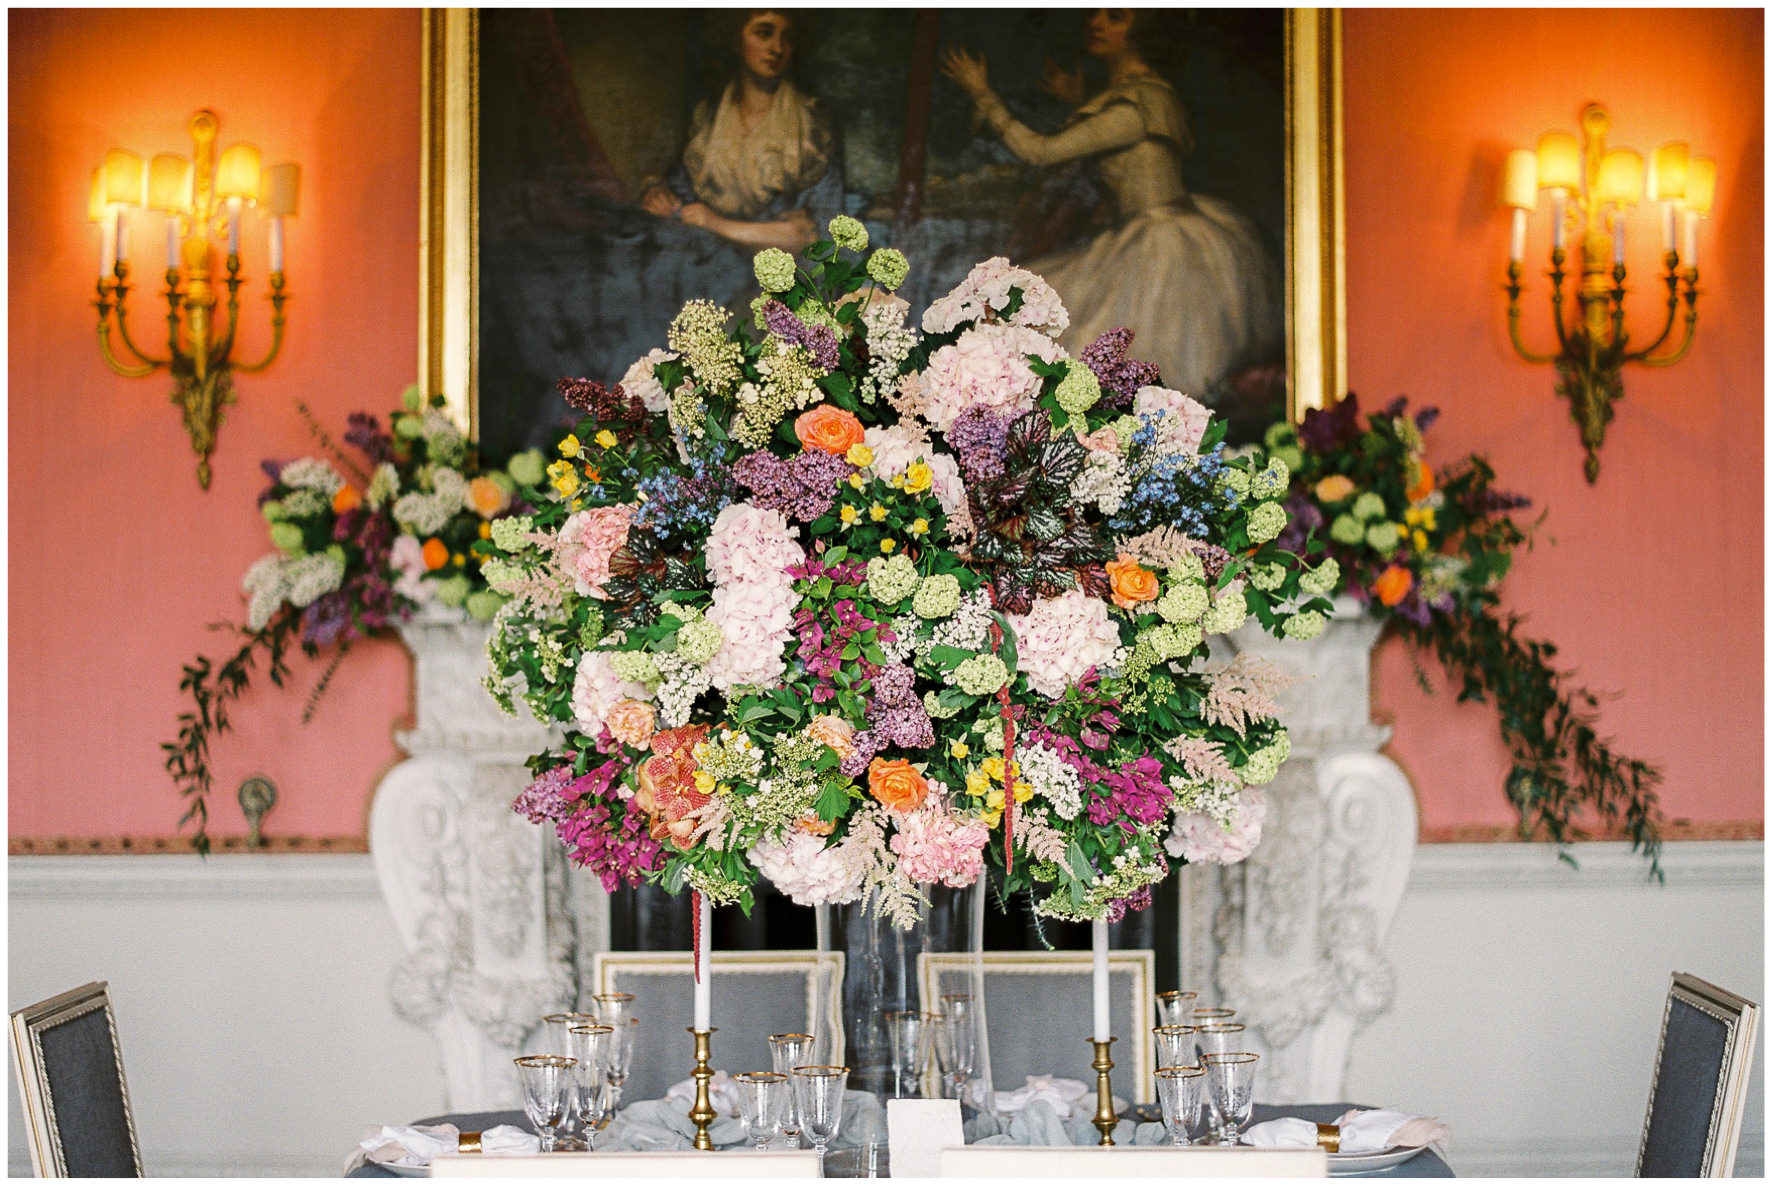 Lucy Davenport Photography, Holdenby House, wedding venue, Northamptonshire, wedding breakfast, tablescape, gold rim wine glasses, gold cutlery,